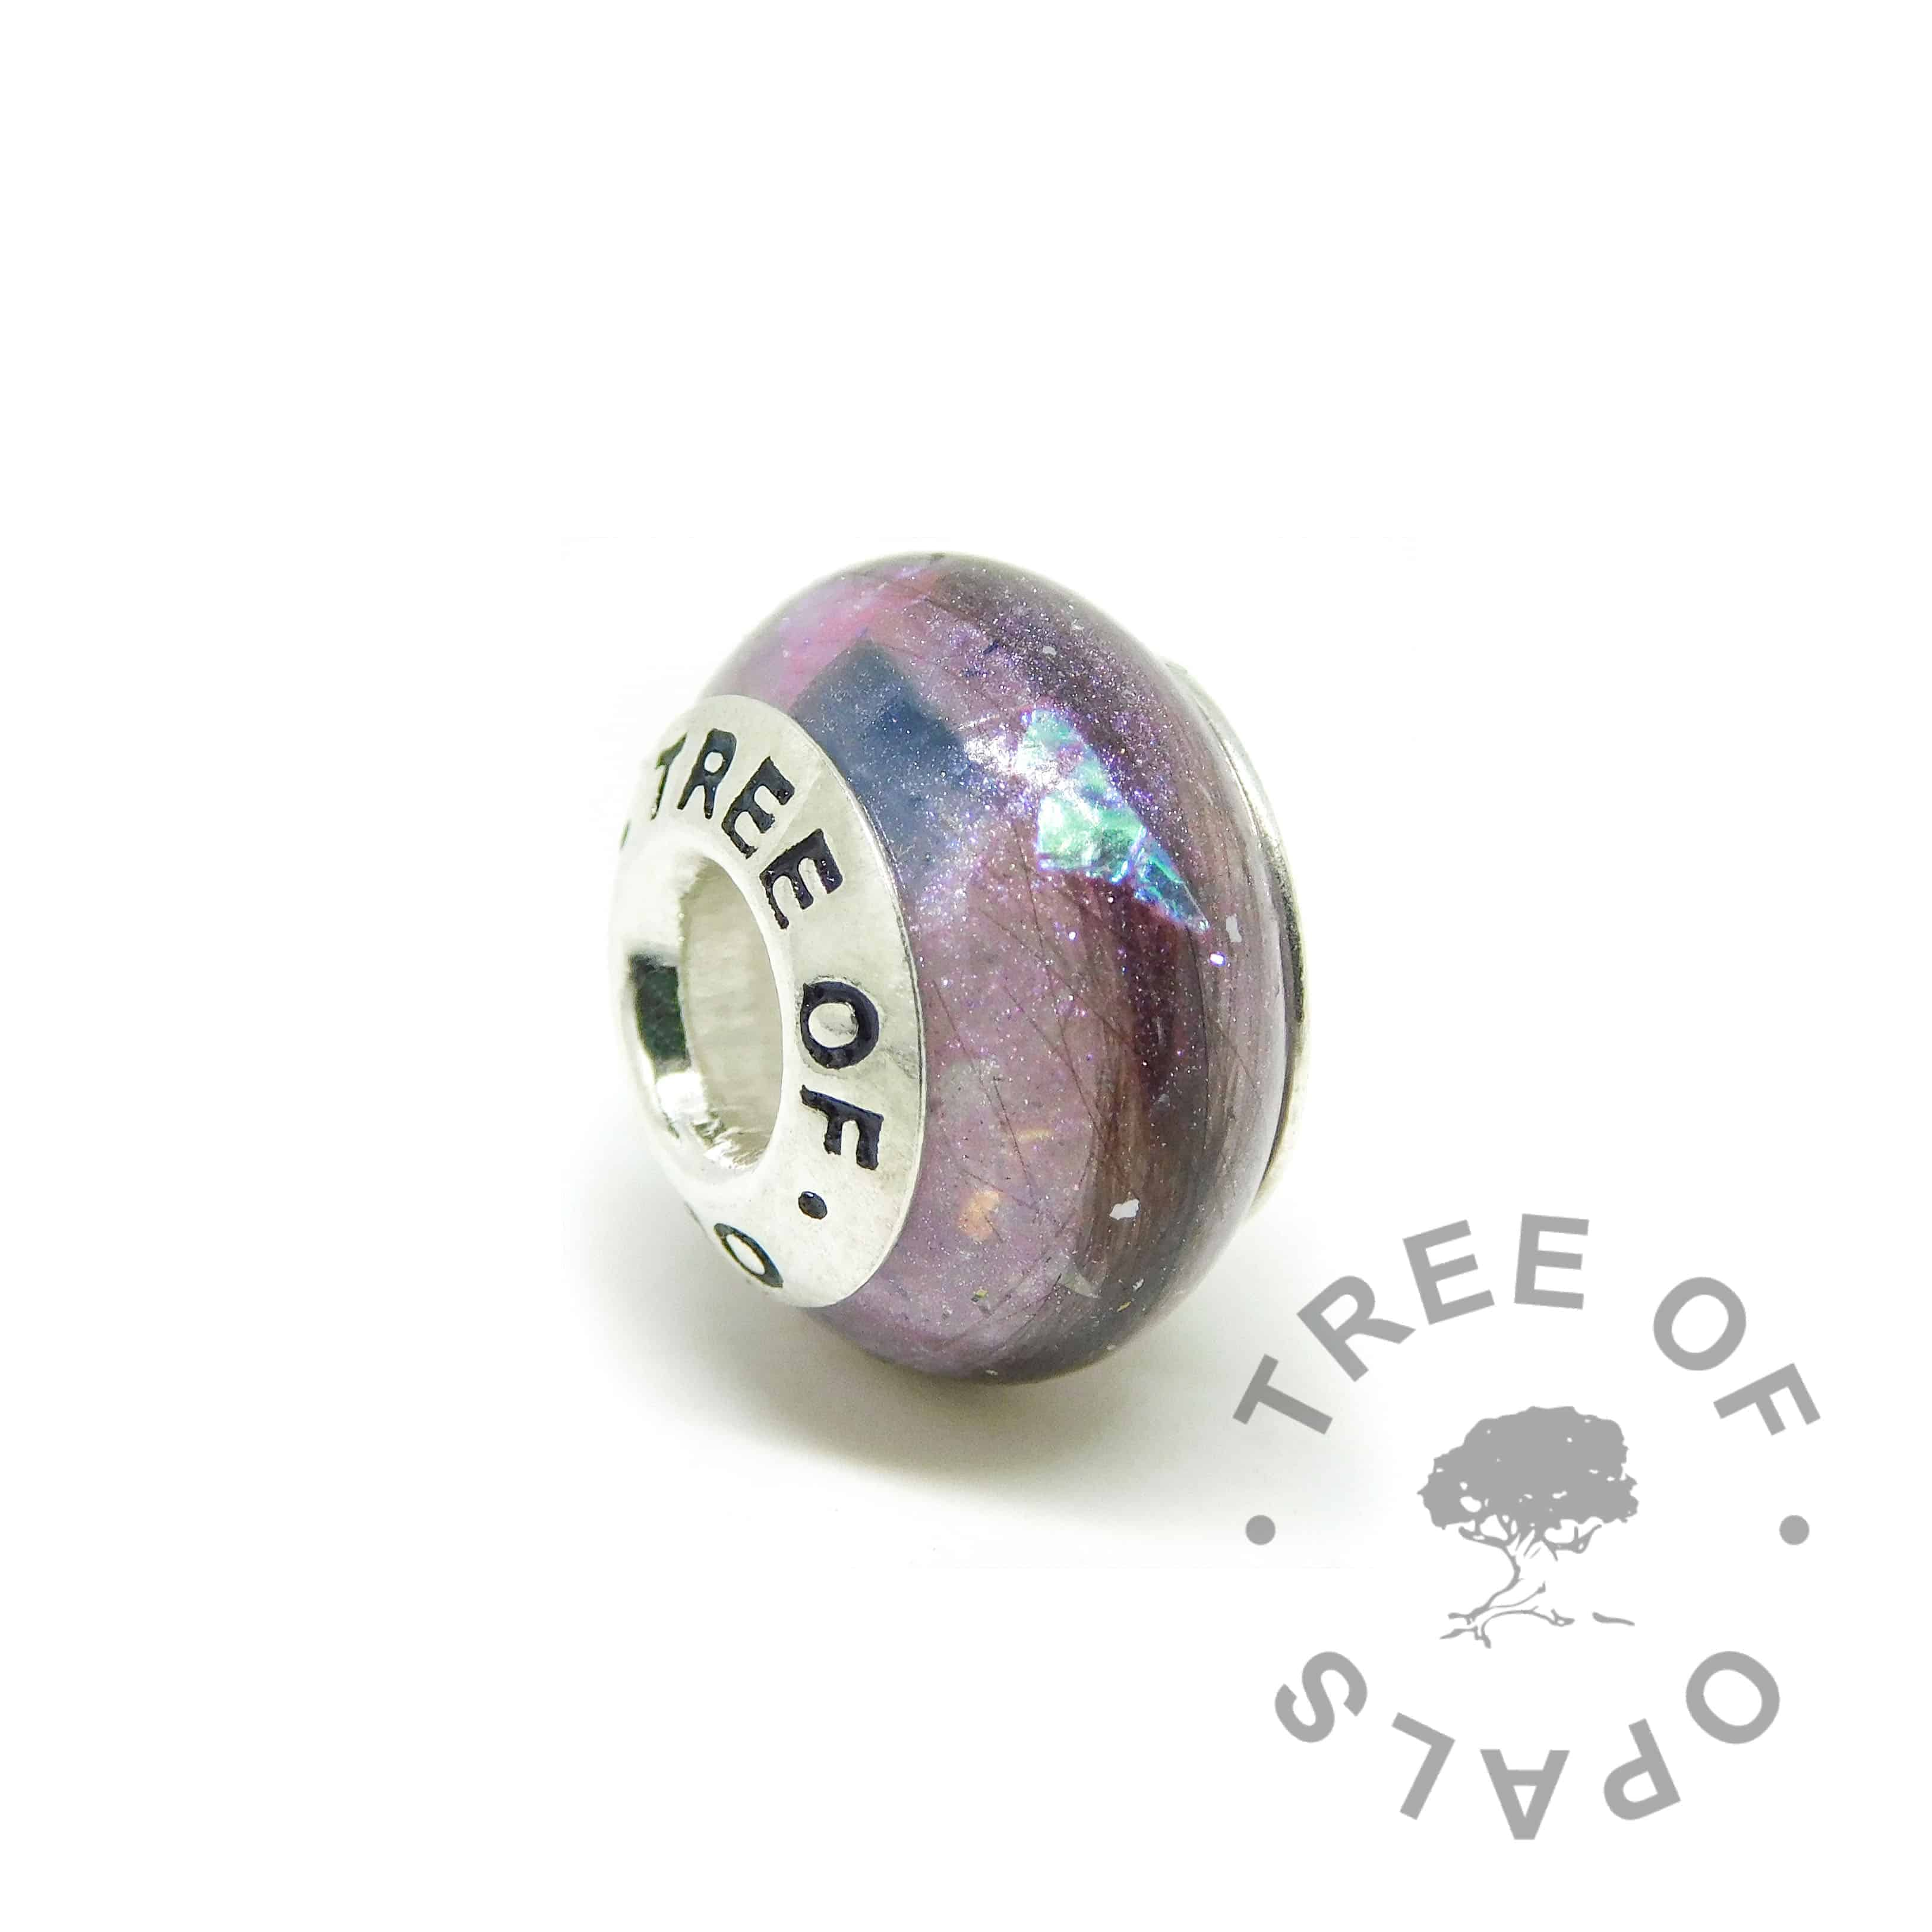 September birthstone sapphire and orchid purple lock of hair memorial charm bead with a solid 925 sterling silver Tree of Opals core. Pressed core for security (not glued on). First curl bead hair charm for Pandora bracelets and necklaces